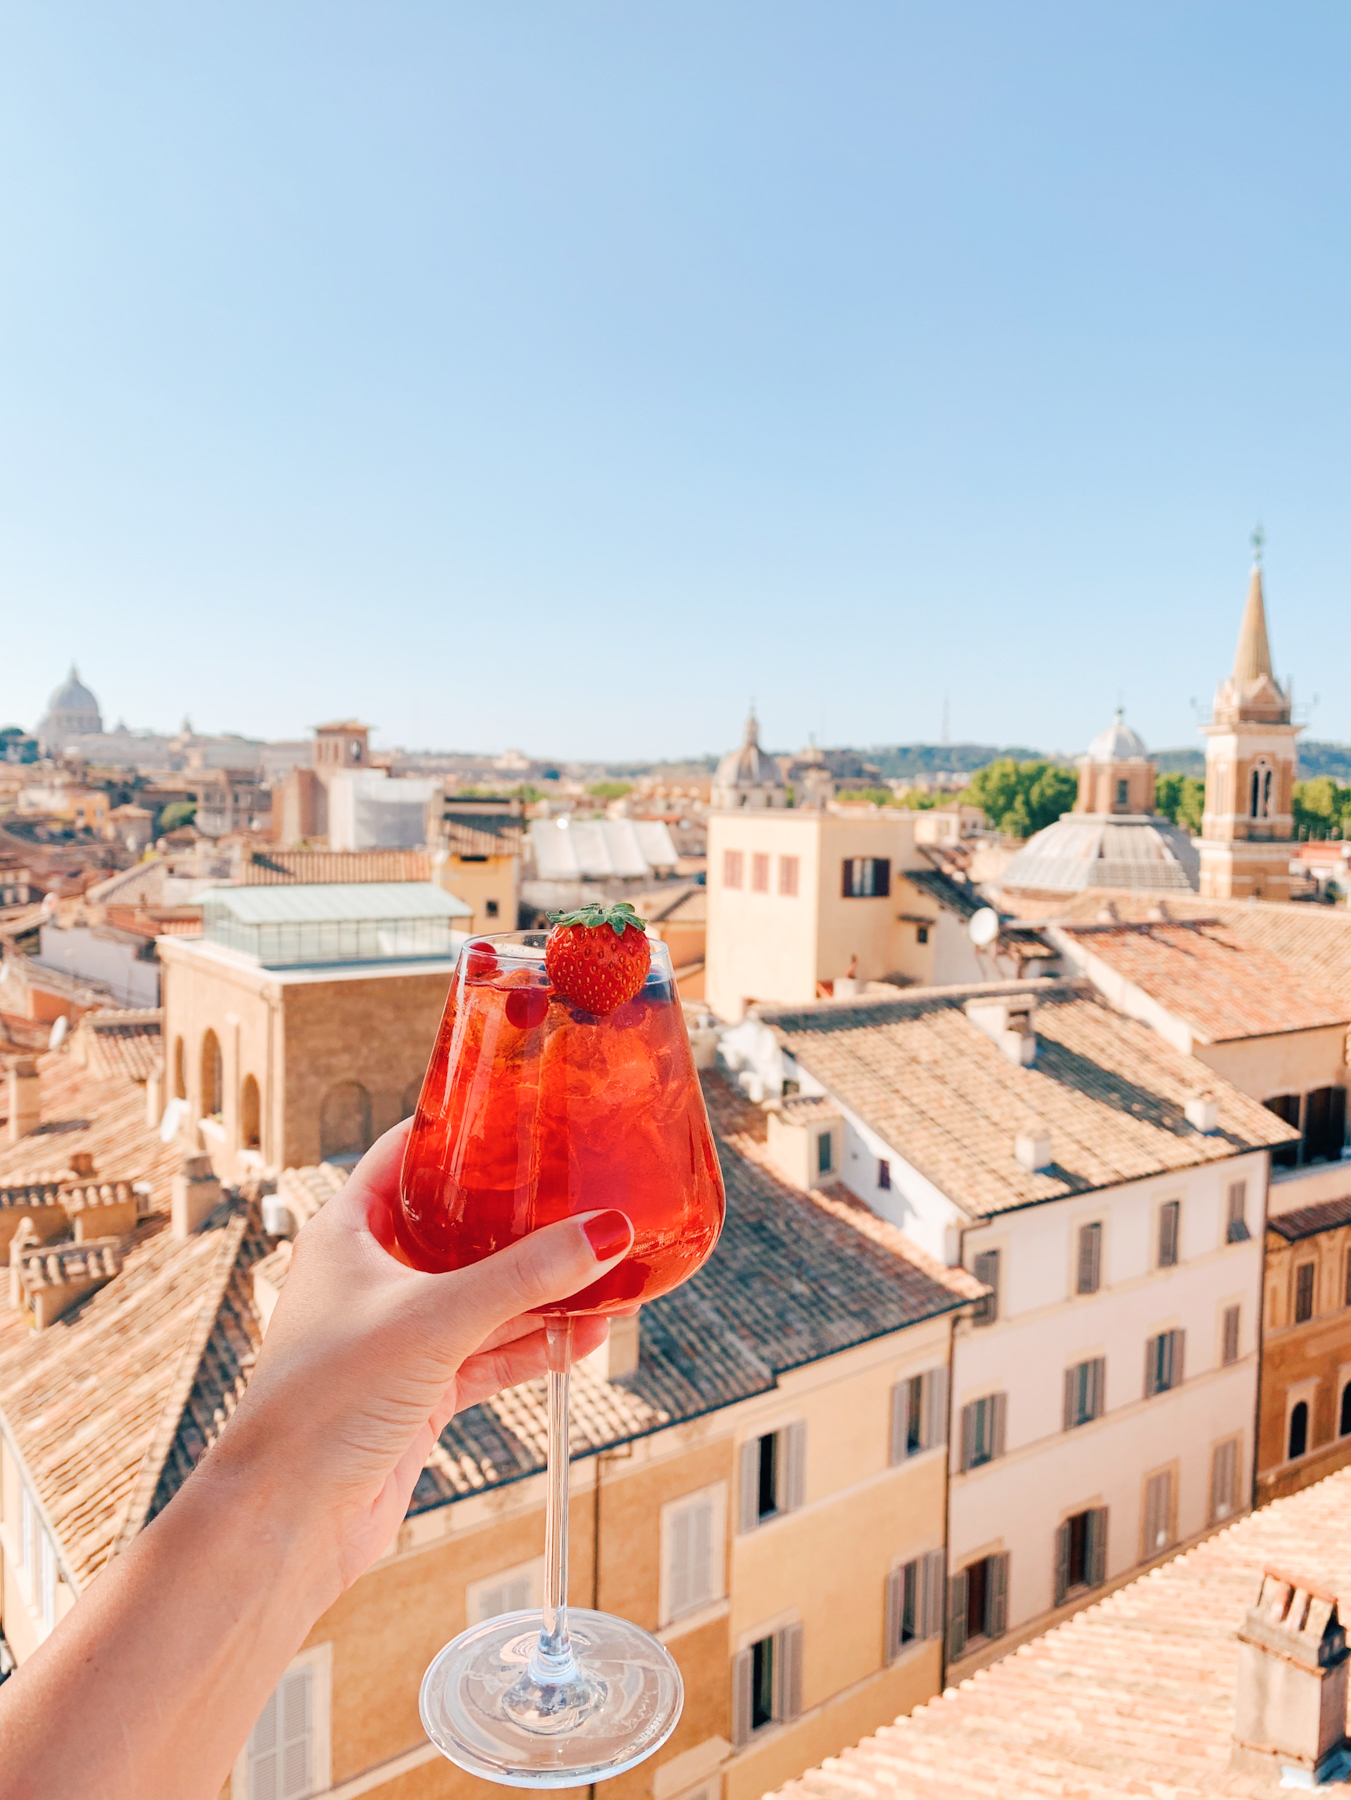 We got rooftop drinks at Terrazza Borromini (part of Eitch Borromini hotel) that gives a gorgeous 360 degree view of the city.